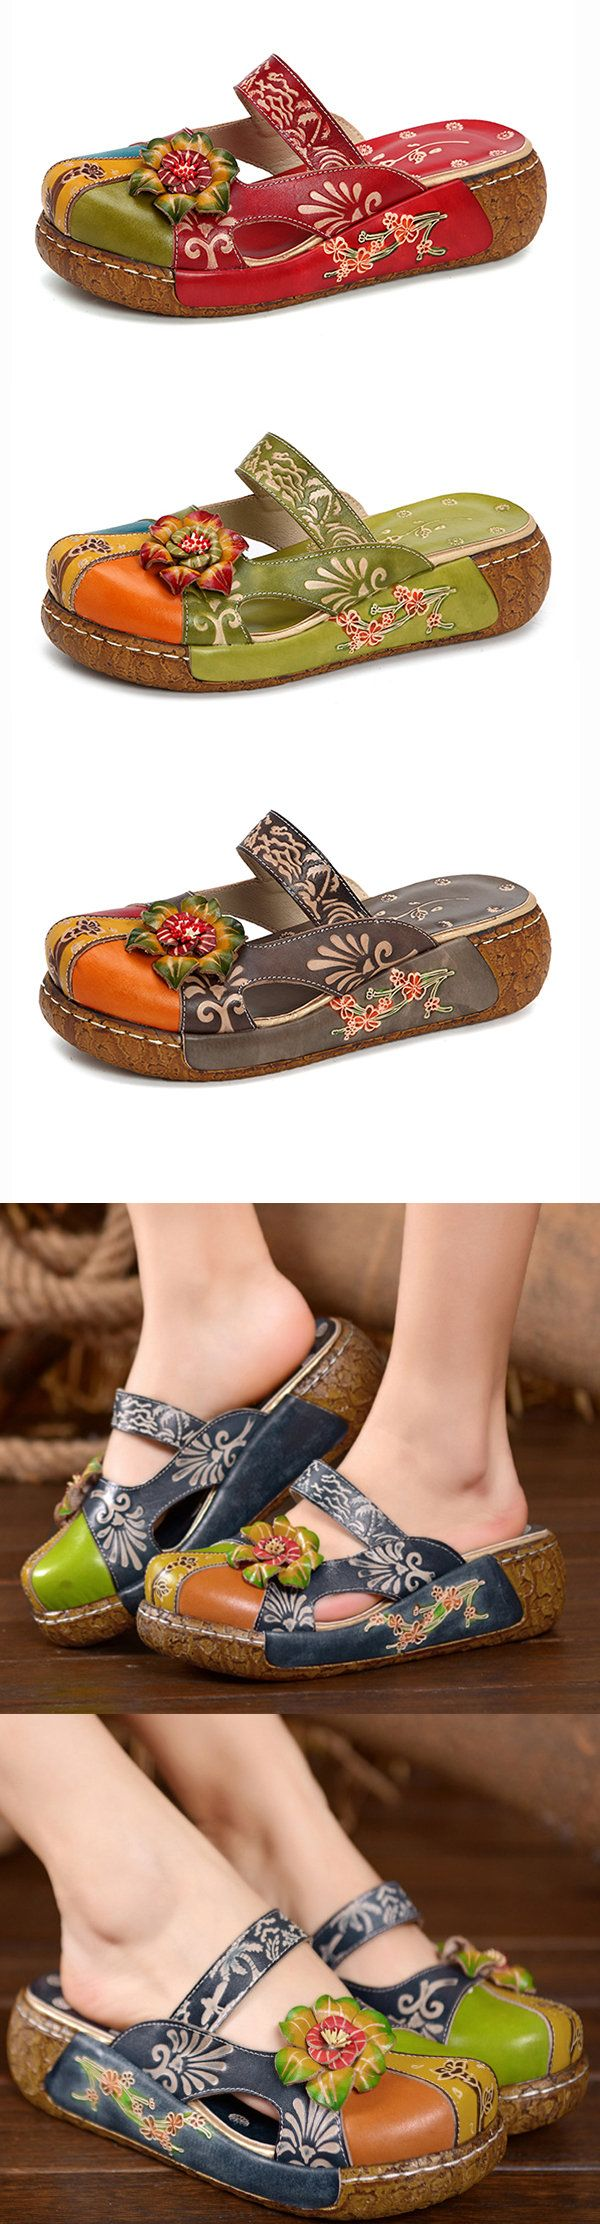 53c15ecf5c92b SOCOFY Vintage Colorful Leather Hollow Out Backless Flower Shoes summer   shopping  shoes